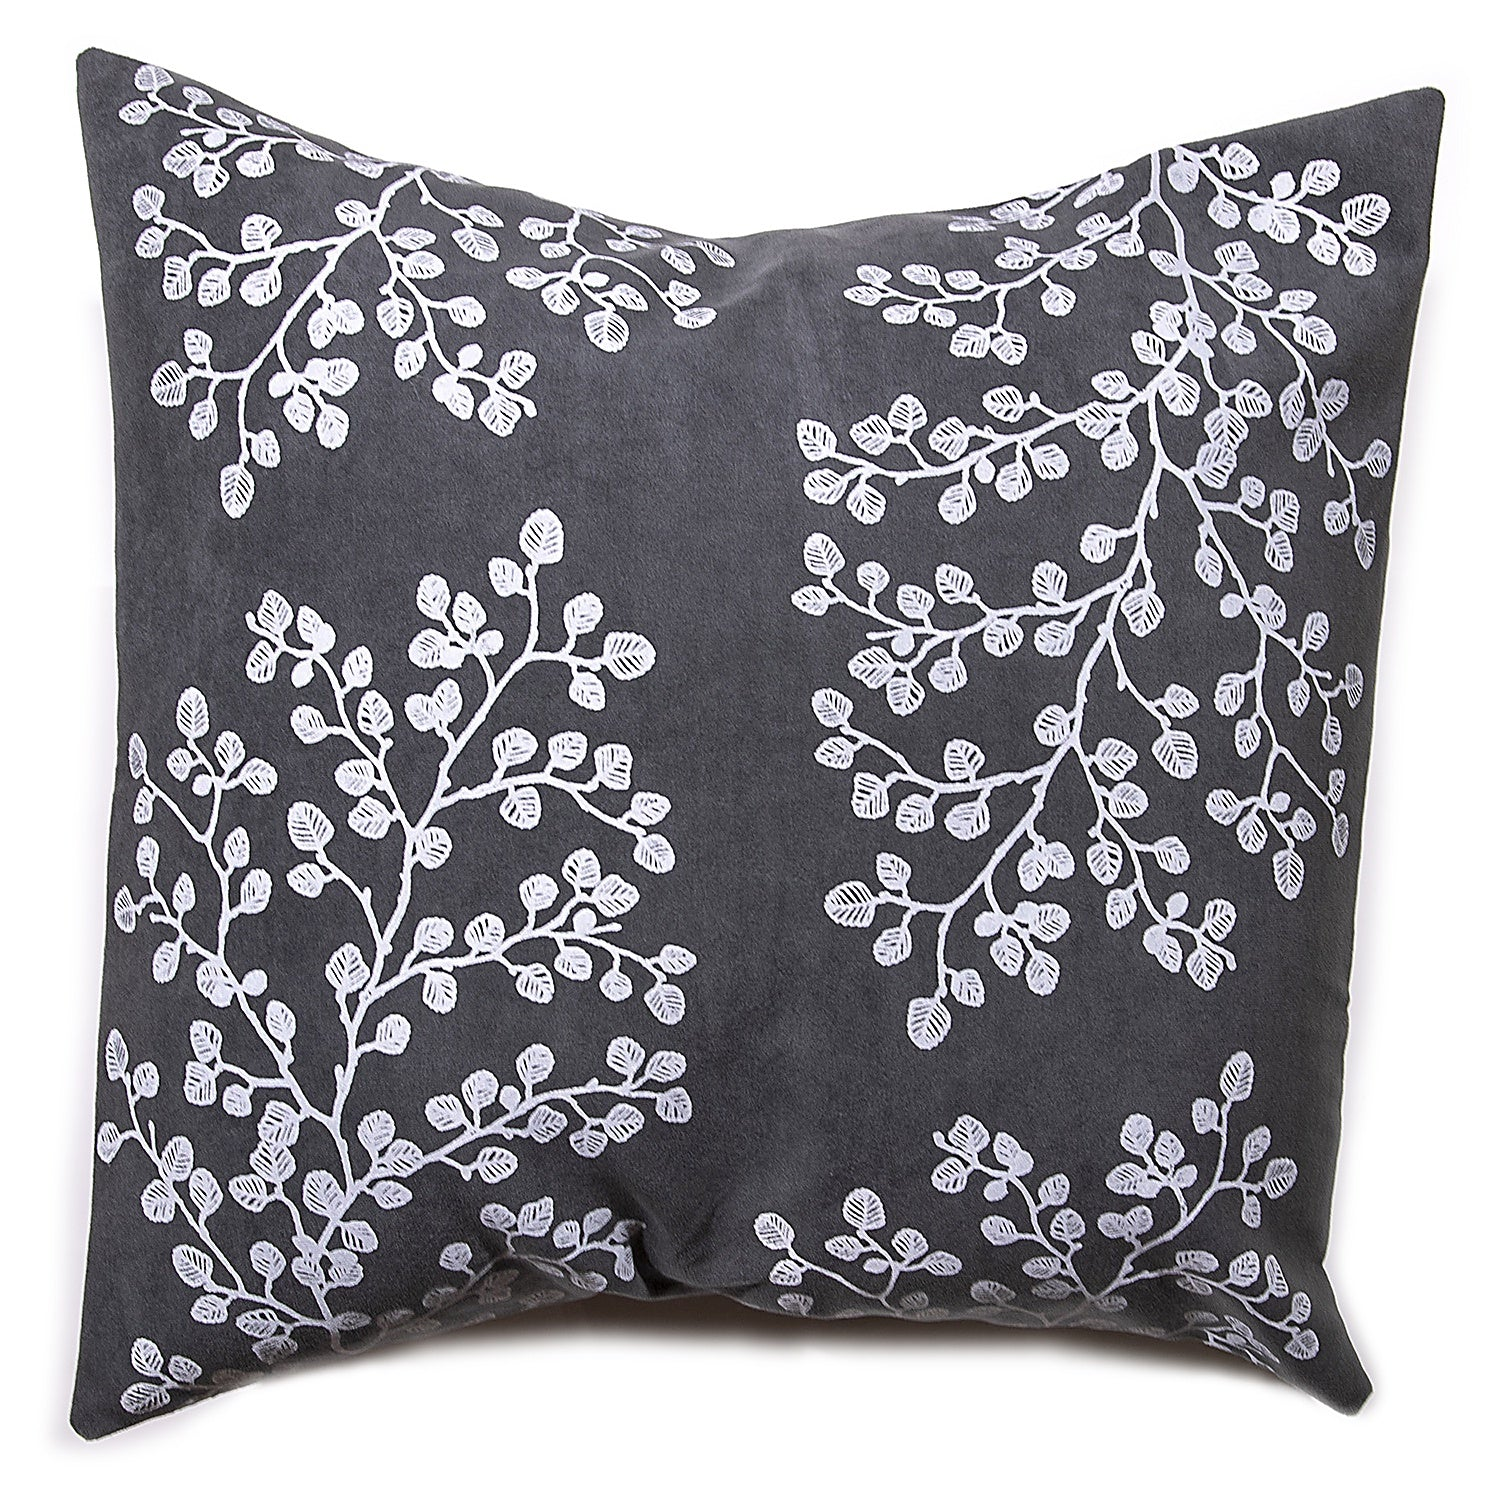 Stalley Textile Co. - Cushion Cover - Fagus - White on Charcoal